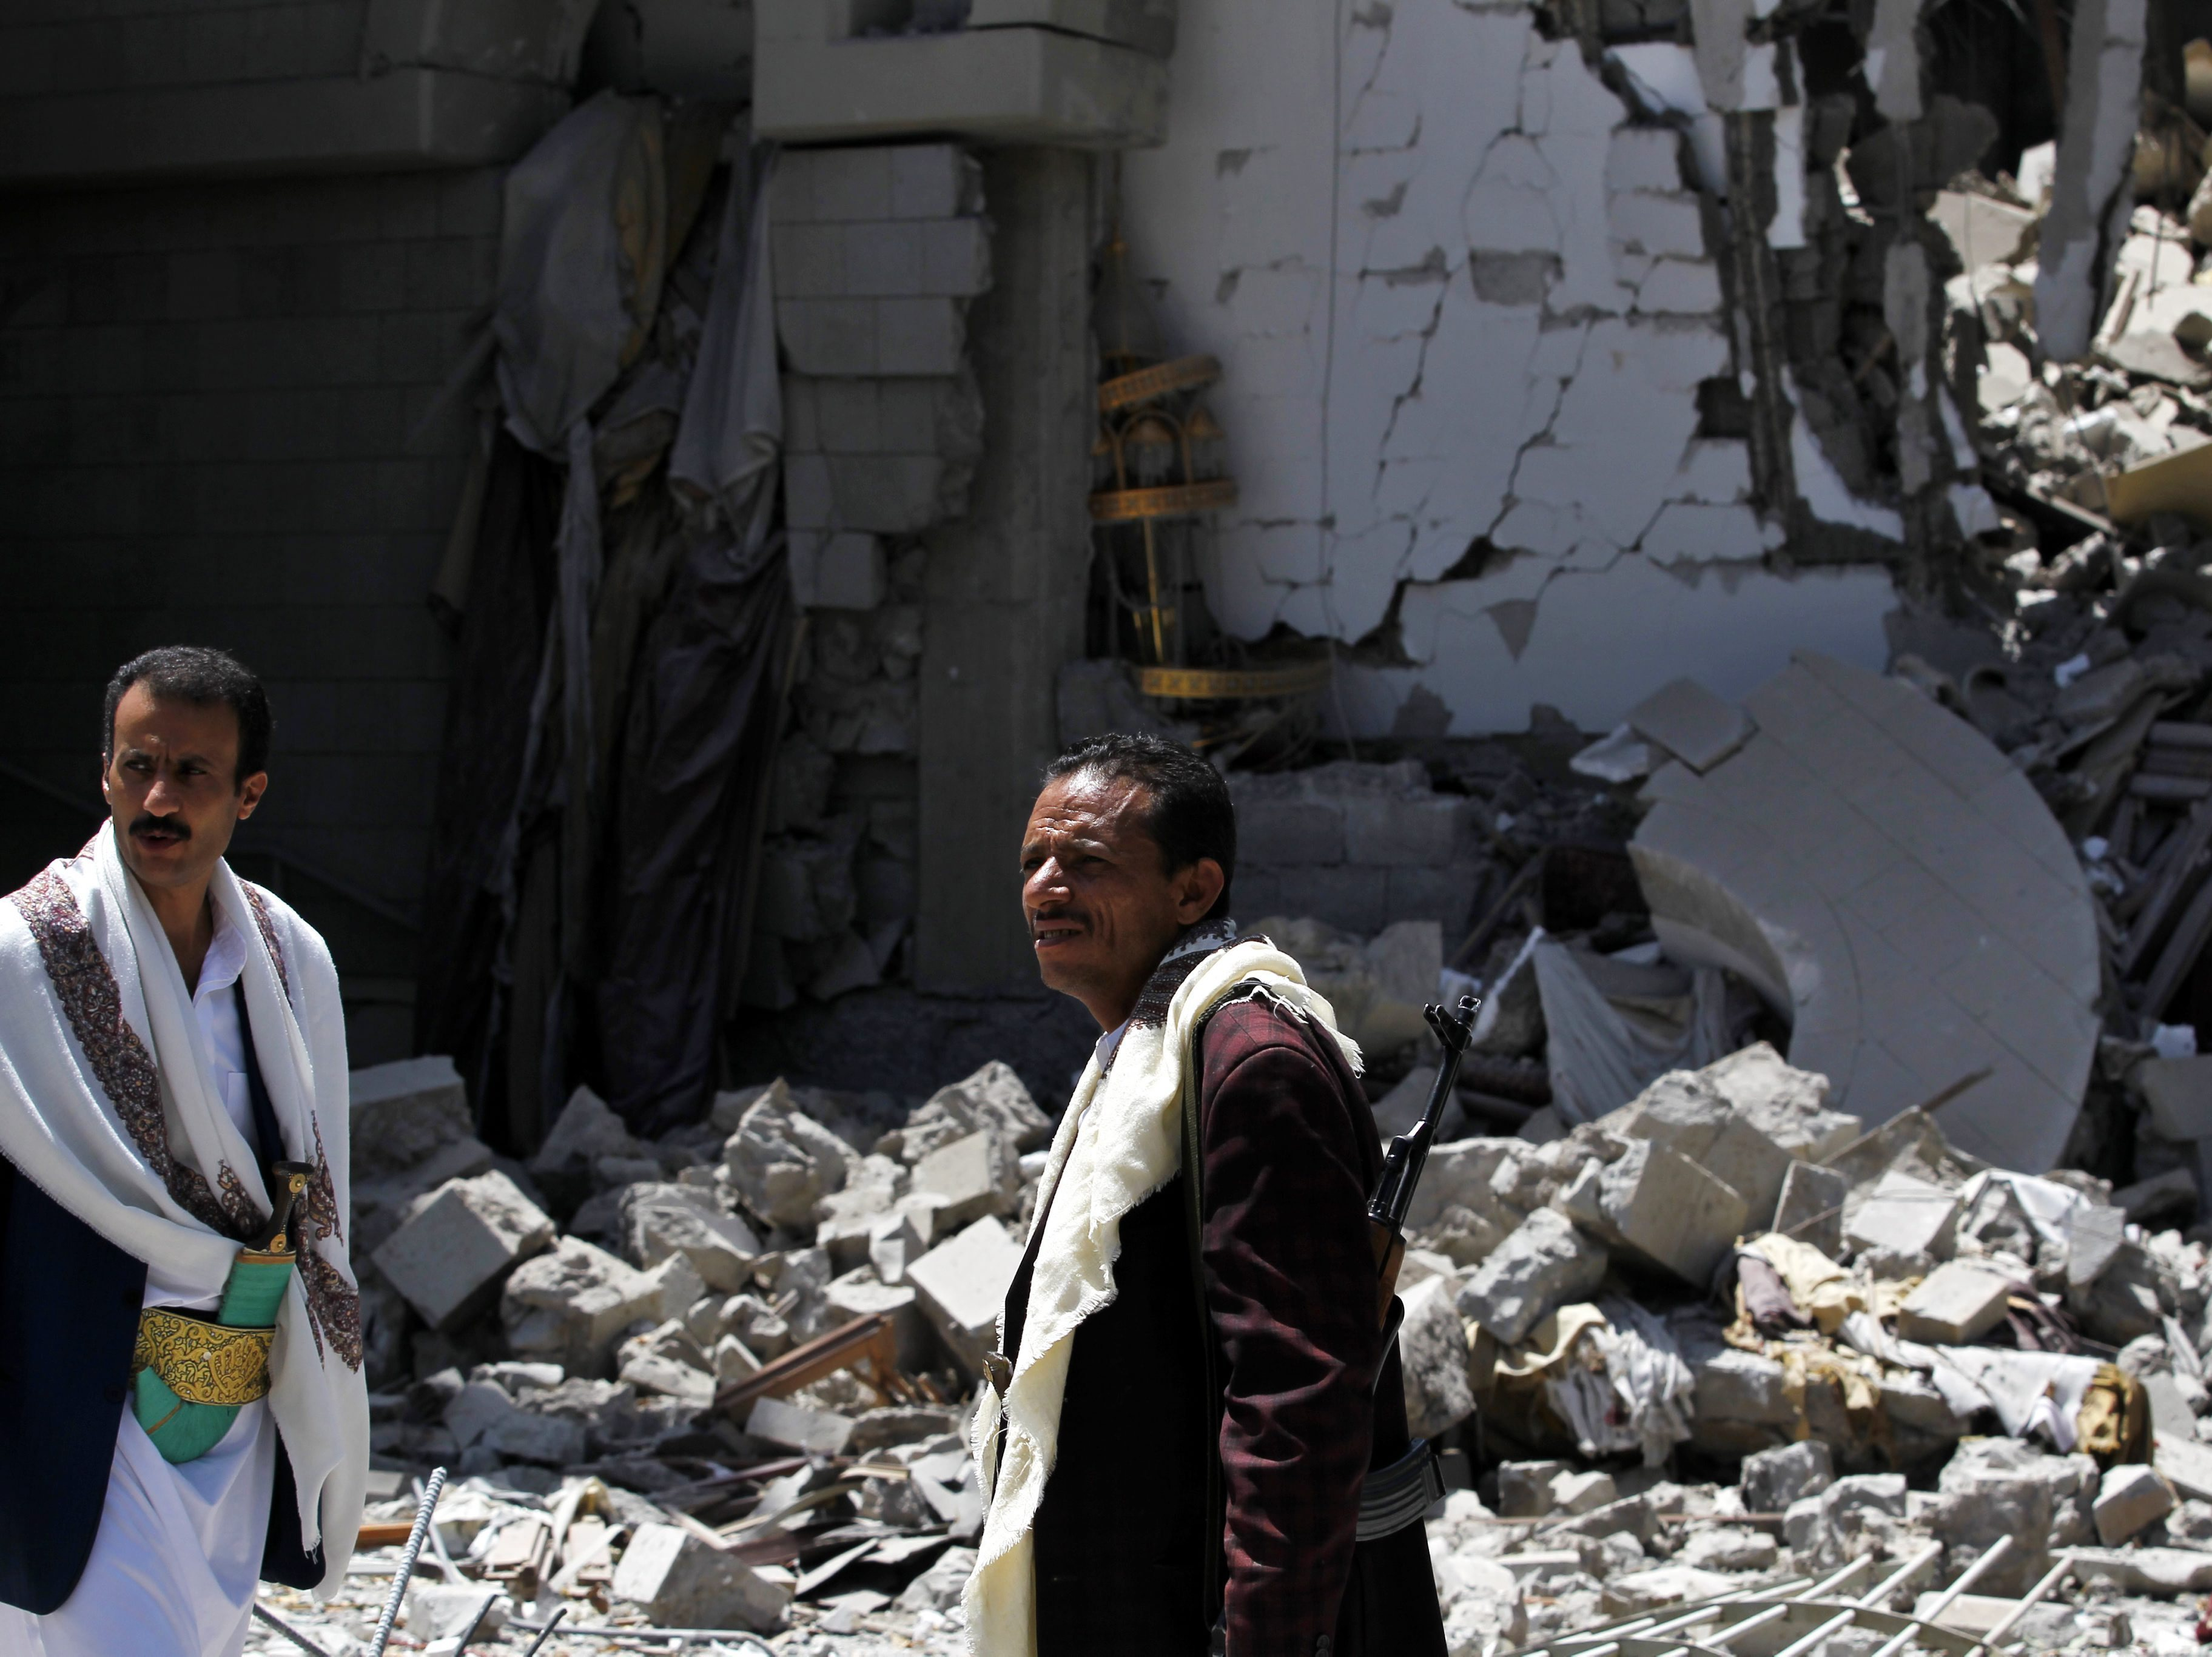 Yemen's Houthis Agree To 5-Day Cease-Fire To Allow Humanitarian Aid